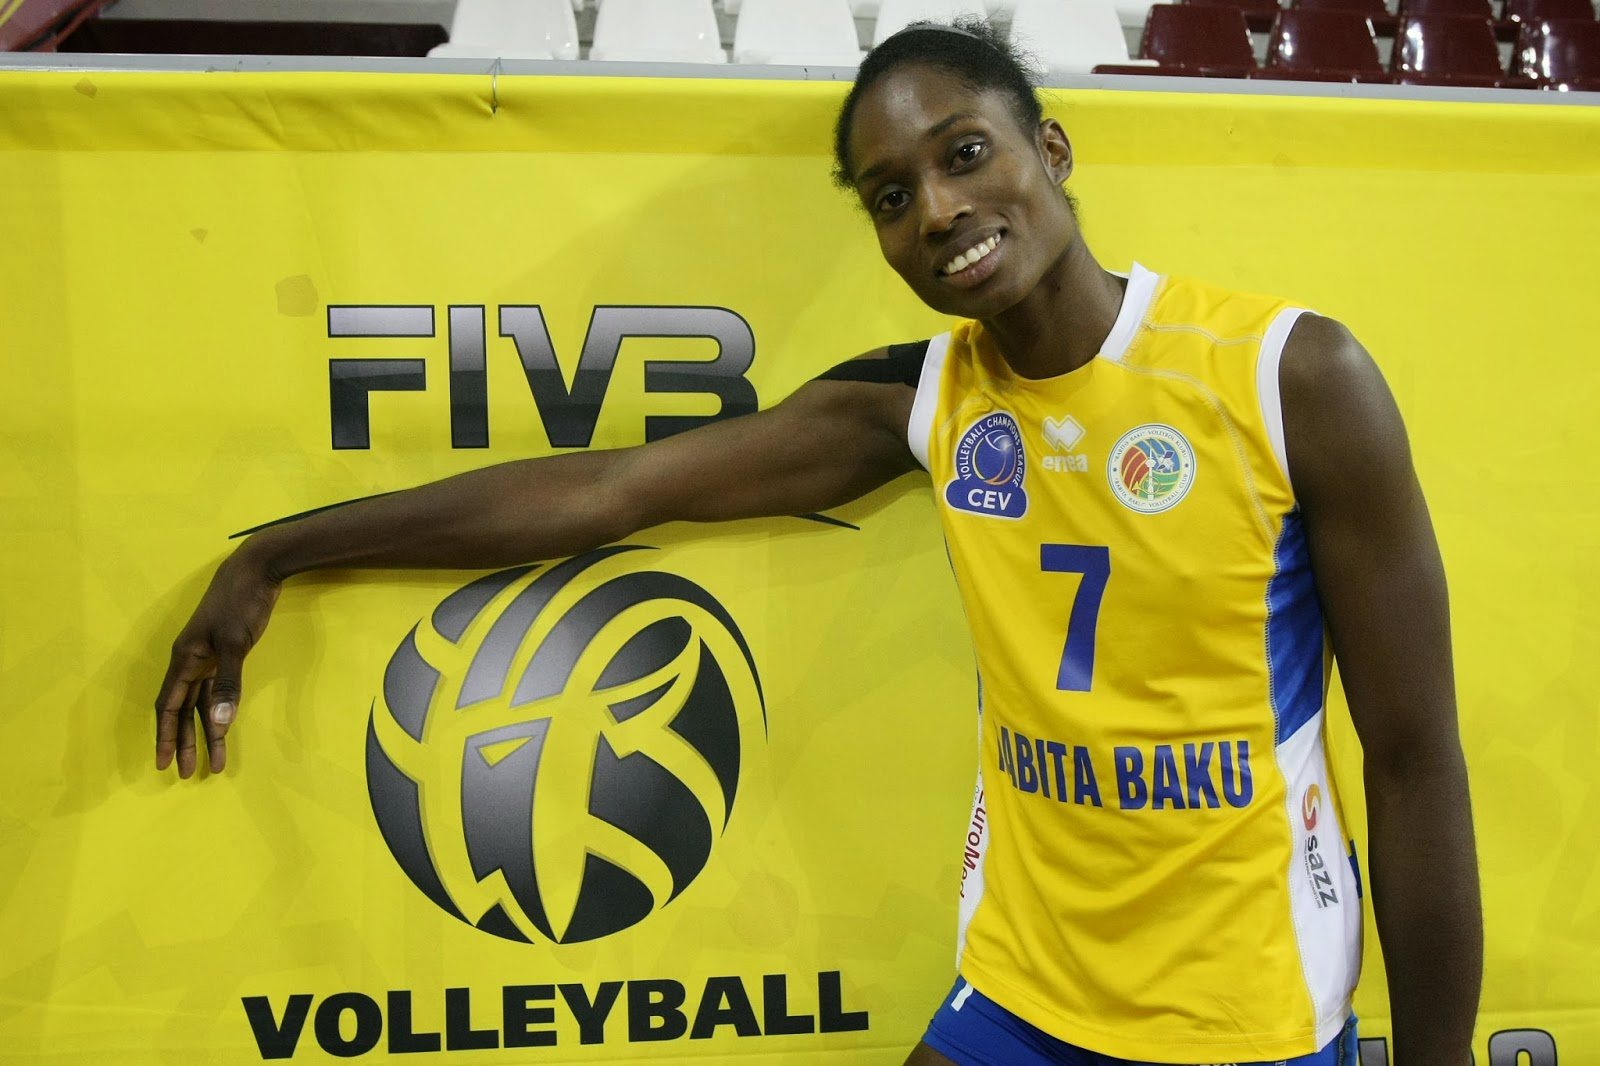 Madelaynne Montano Highest Paid Female Volleyball Players in the World